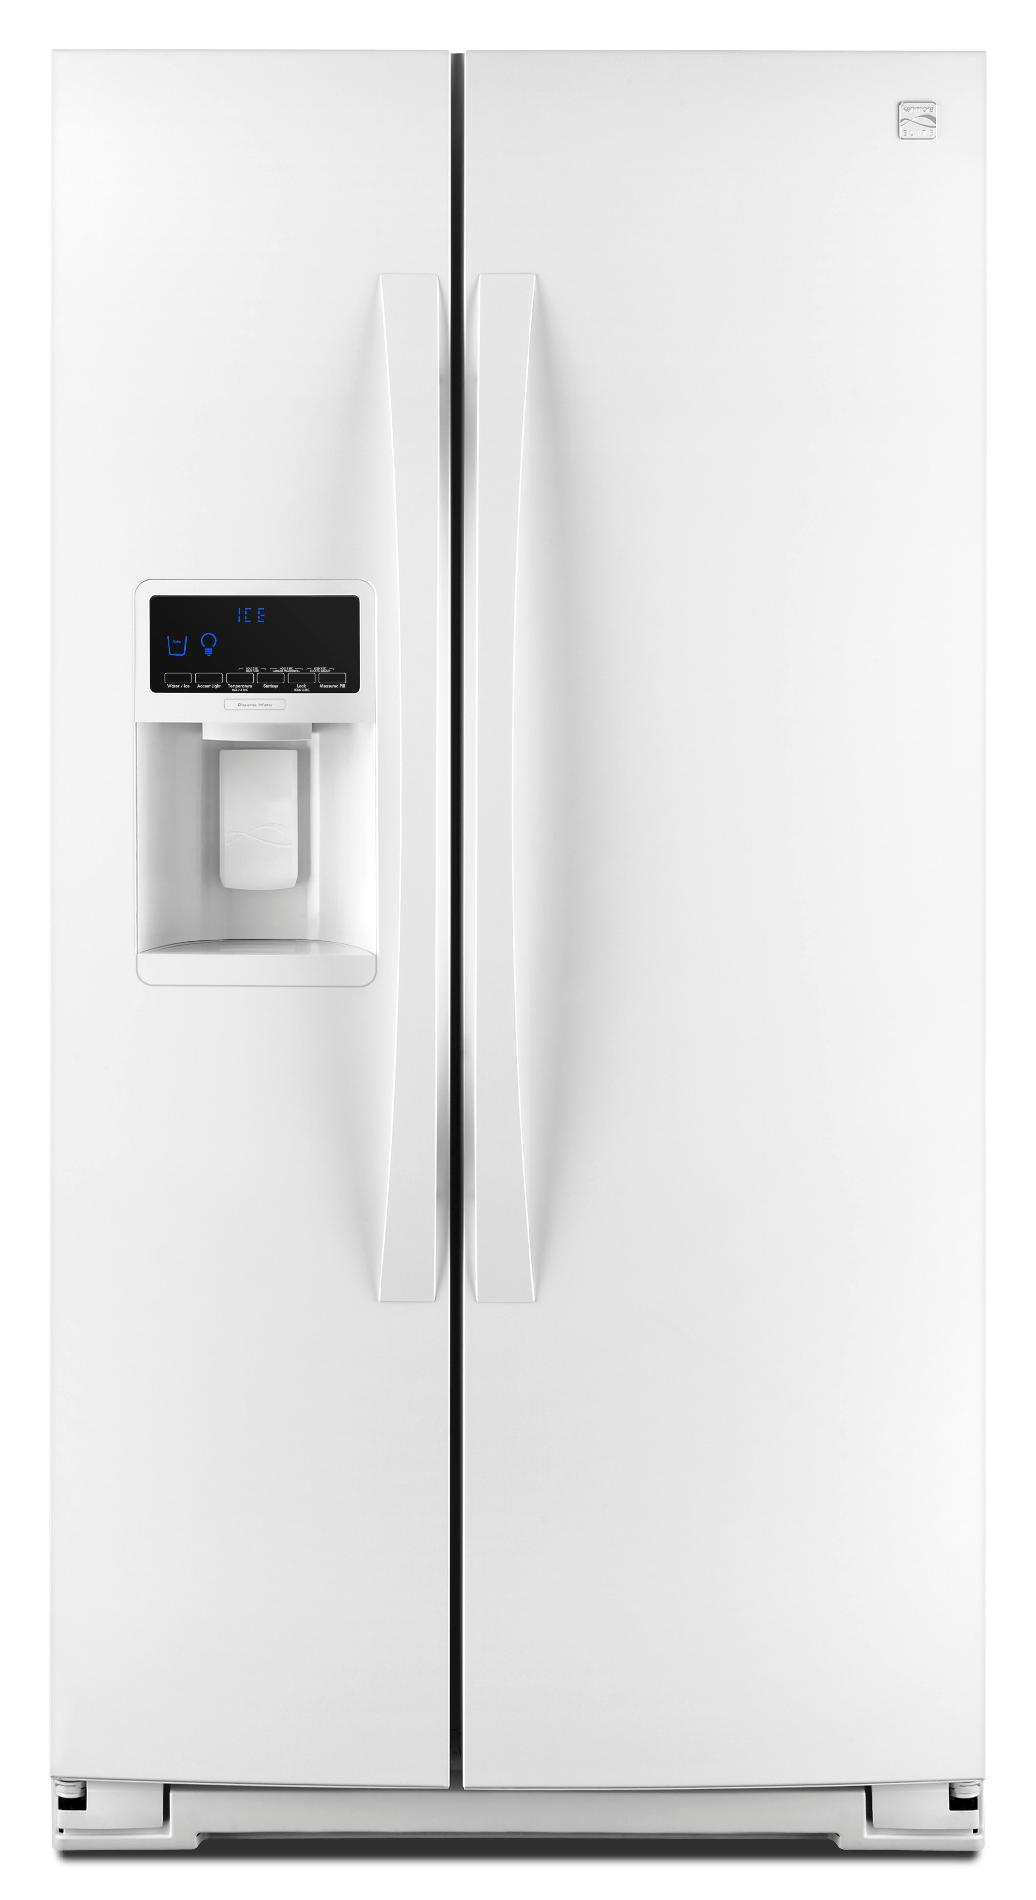 24.5 cu. ft. Counter-Depth Side-by-Side Refrigerator - White